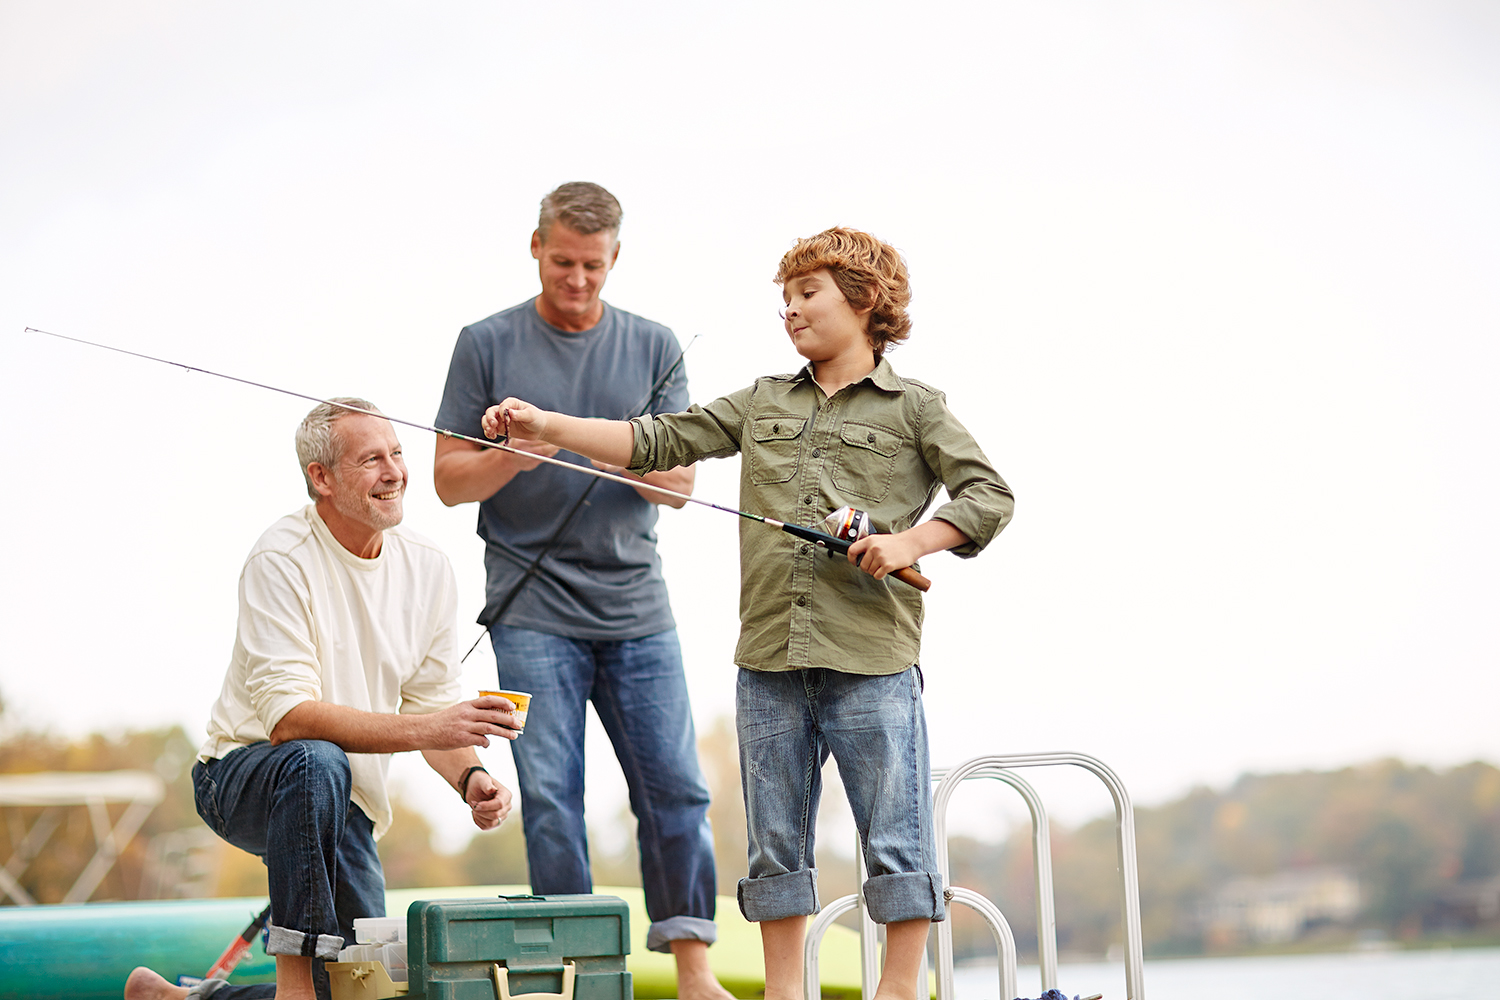 boy fishing with father and grandfather on lake dock with poles.jpg